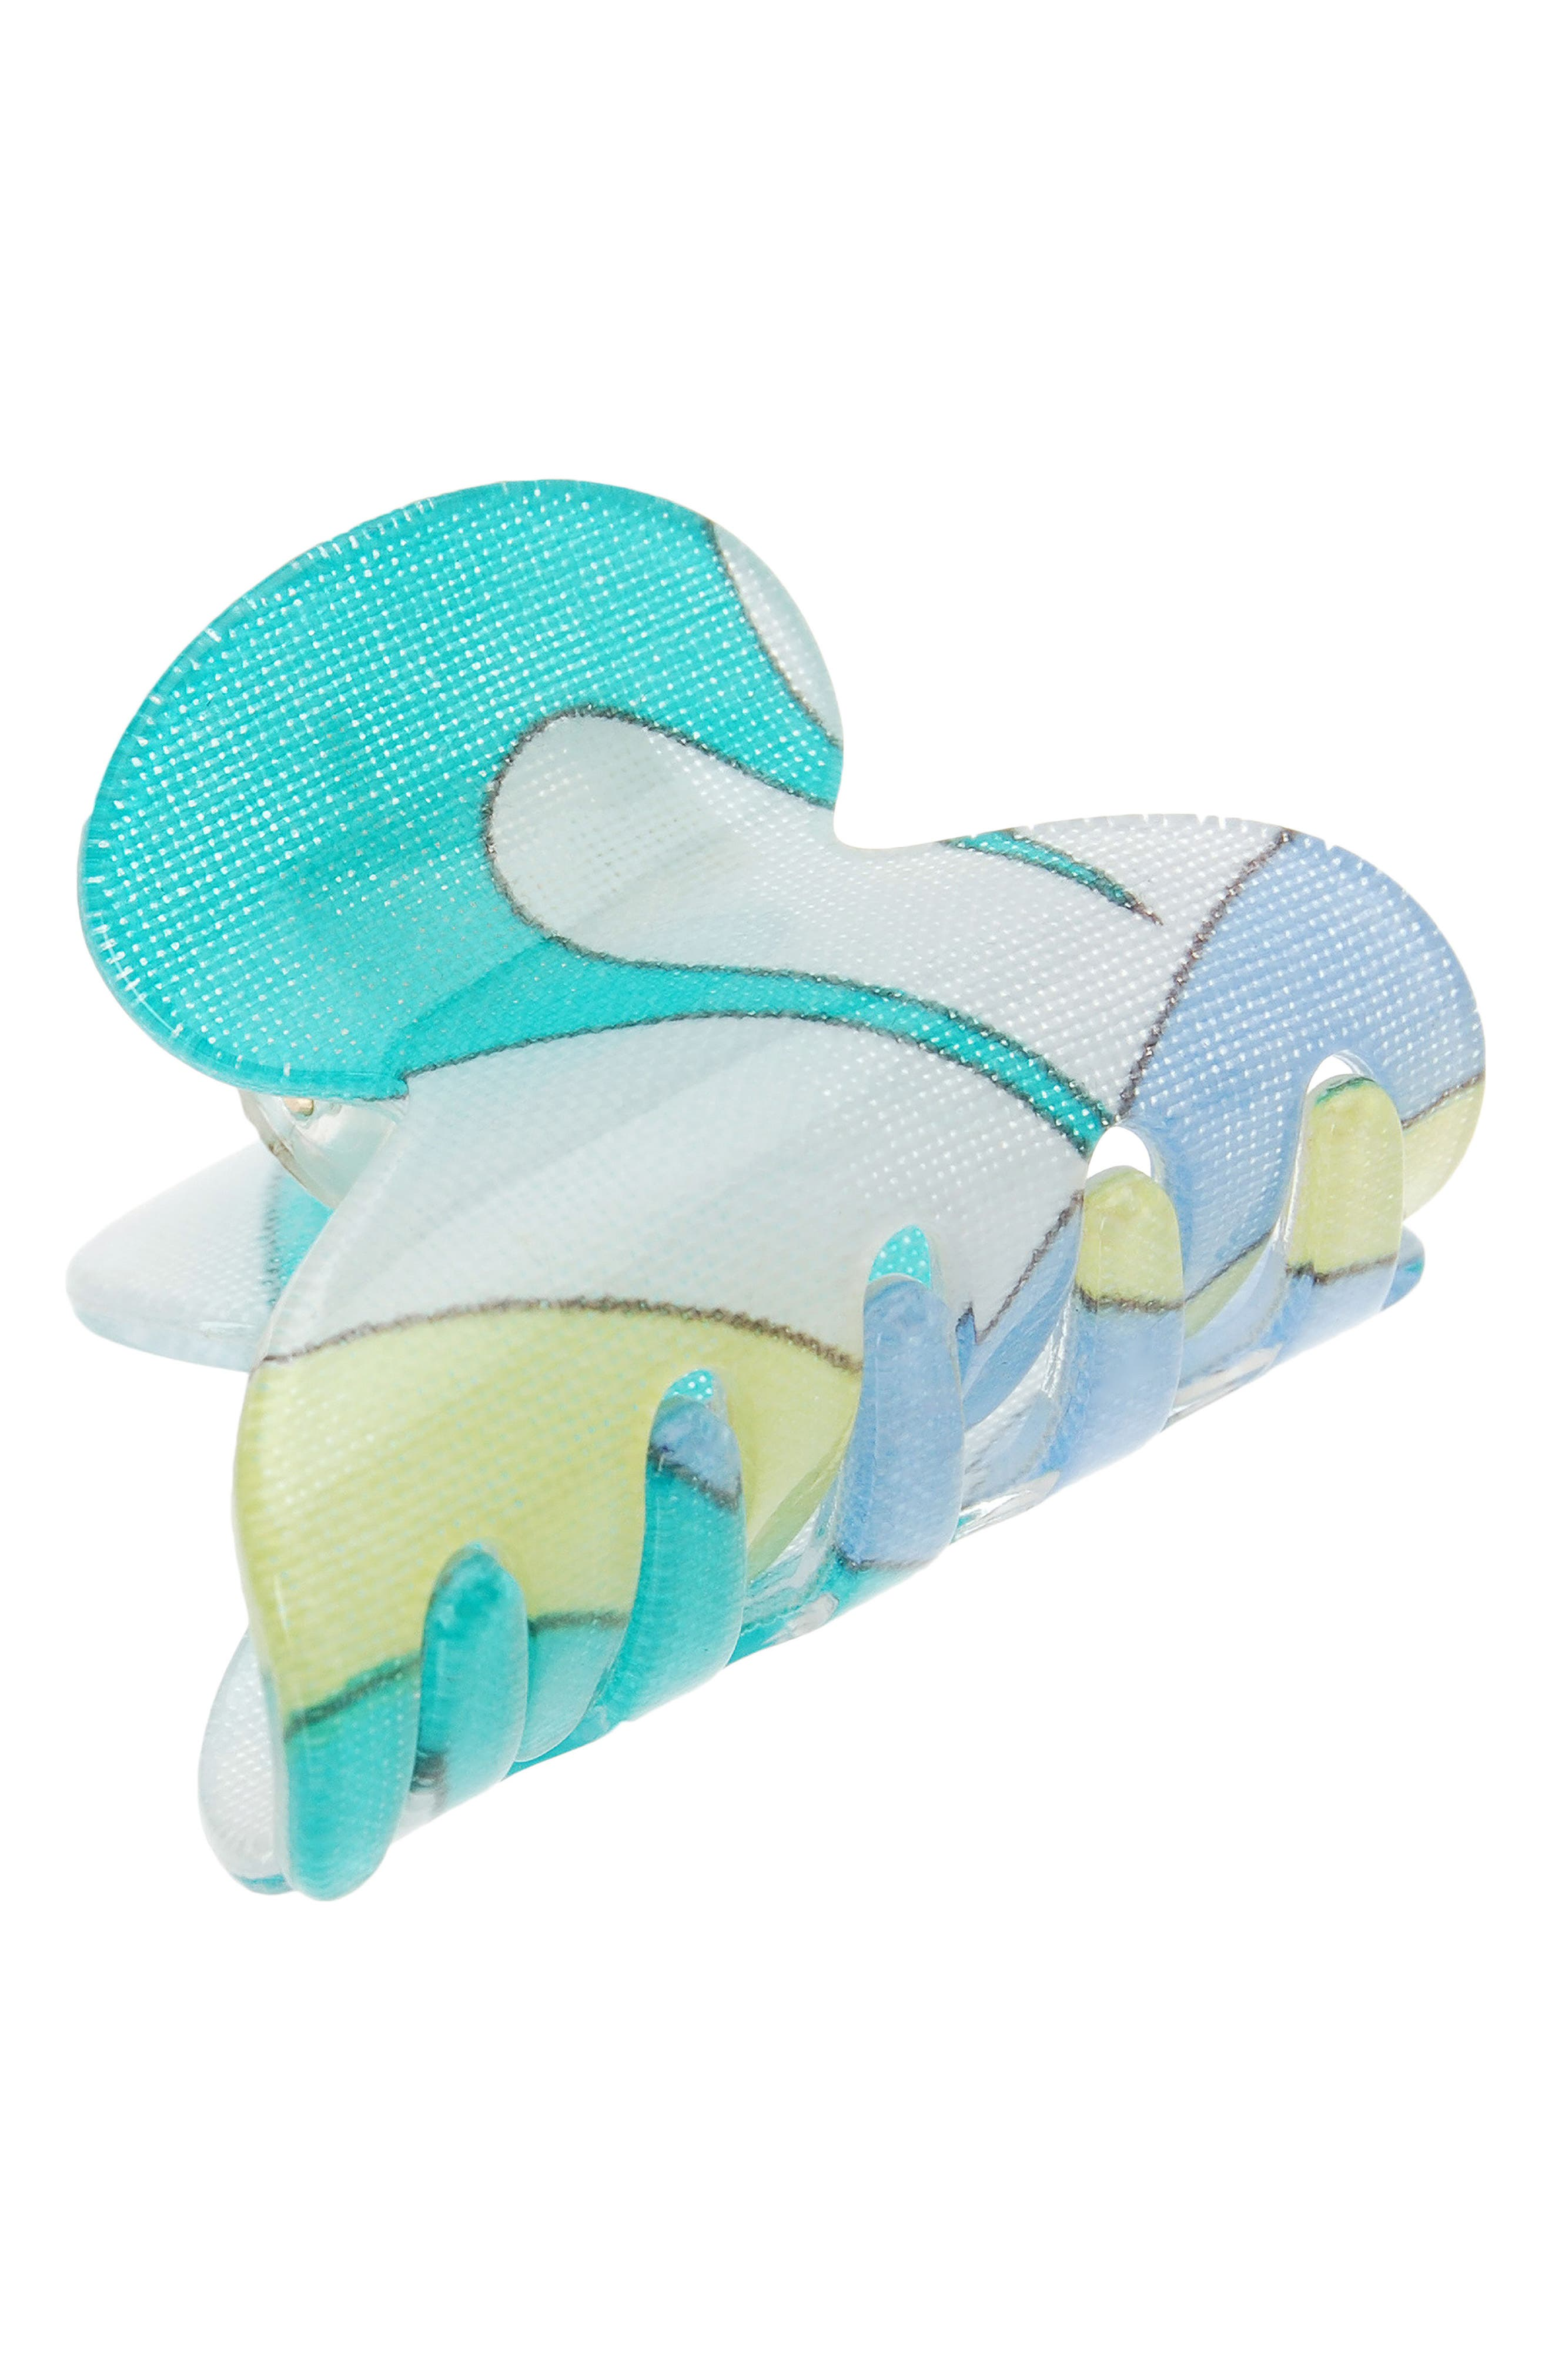 'Mini Couture' Jaw Clip,                             Main thumbnail 1, color,                             Mod Swirls Blue/ Green